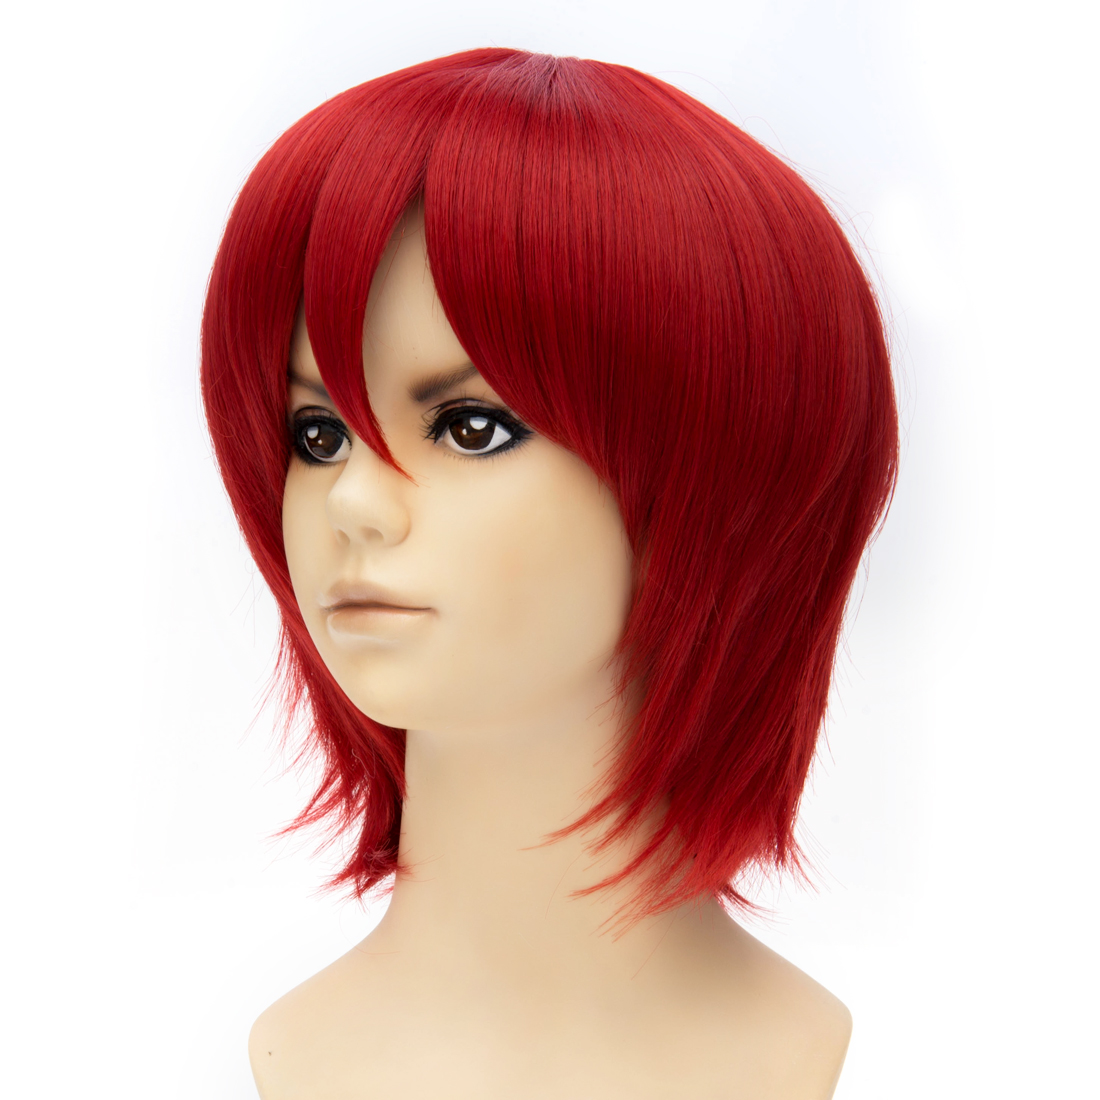 Assassination Classroom Anime Short Synthetic Women Wig Fashion Red Full Wig Womens Lady Cosplay Party(China (Mainland))